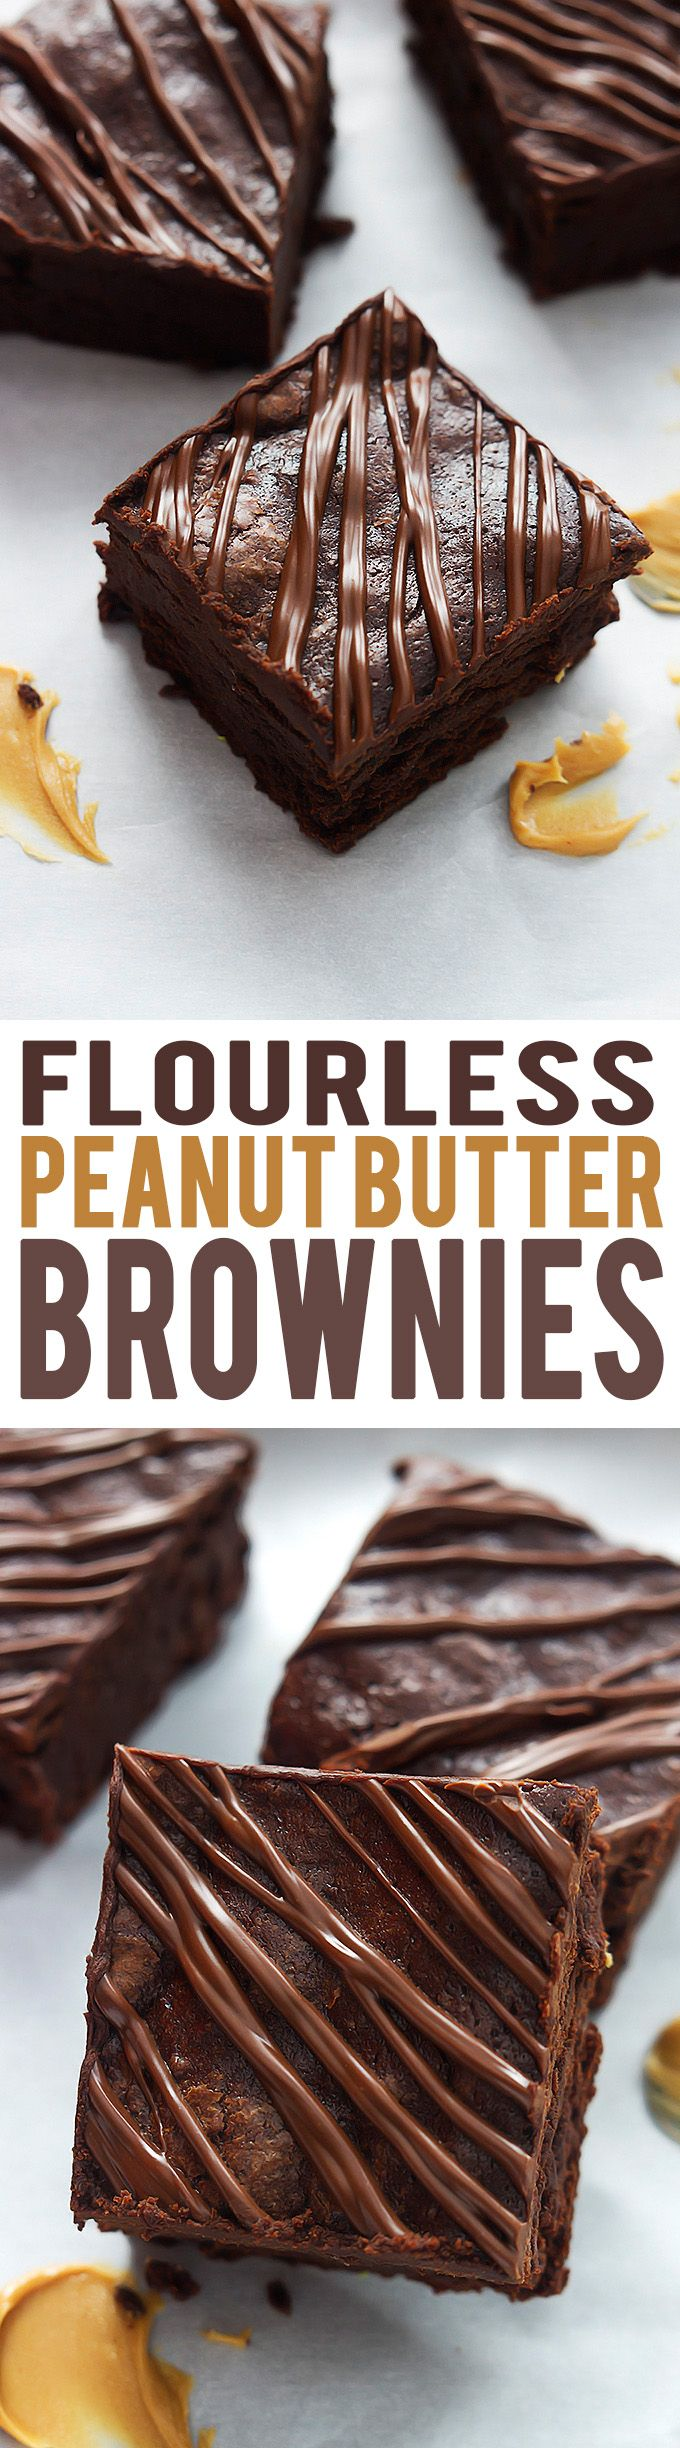 Super fudgey Flourless Peanut Butter Brownies! | lecremedelacrumb.com - substitute the butter for earth balance.